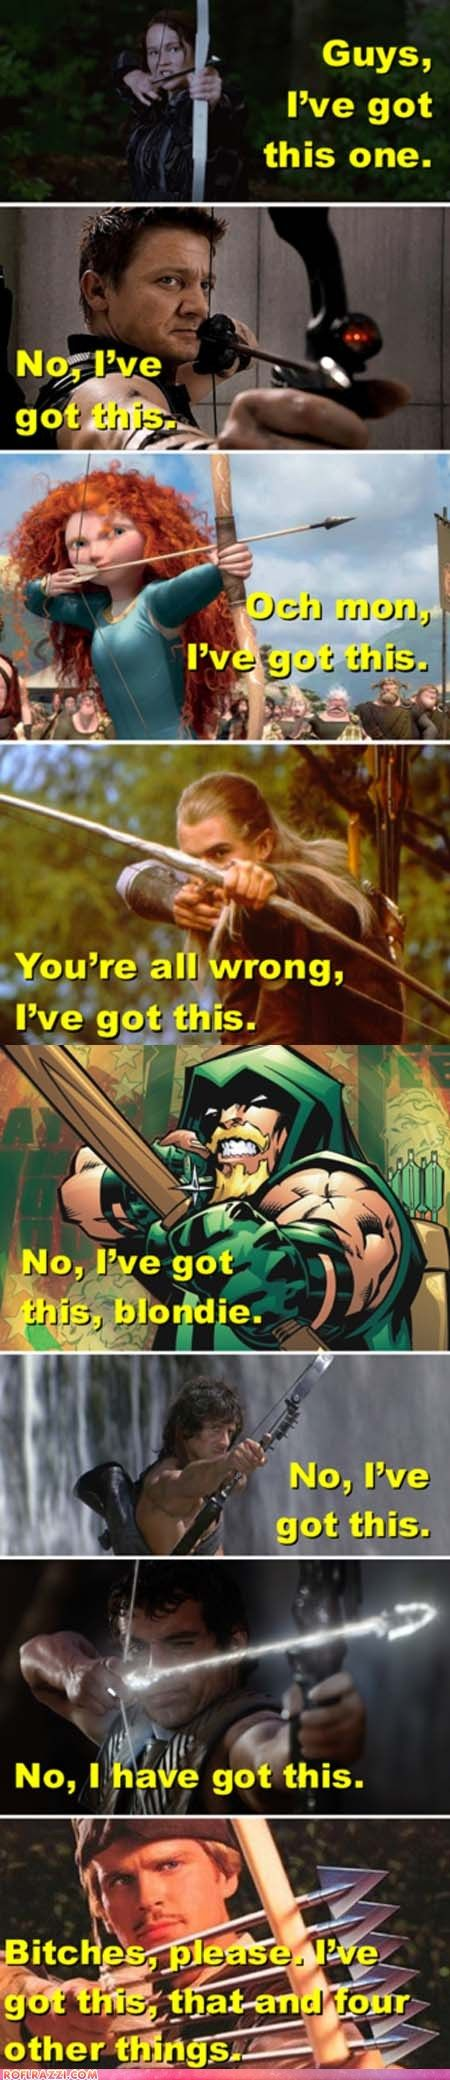 You gotta love archers.: Archer, Funny Stuff, Movie, Robinhood, Robin Hoods, I Got This, Ive